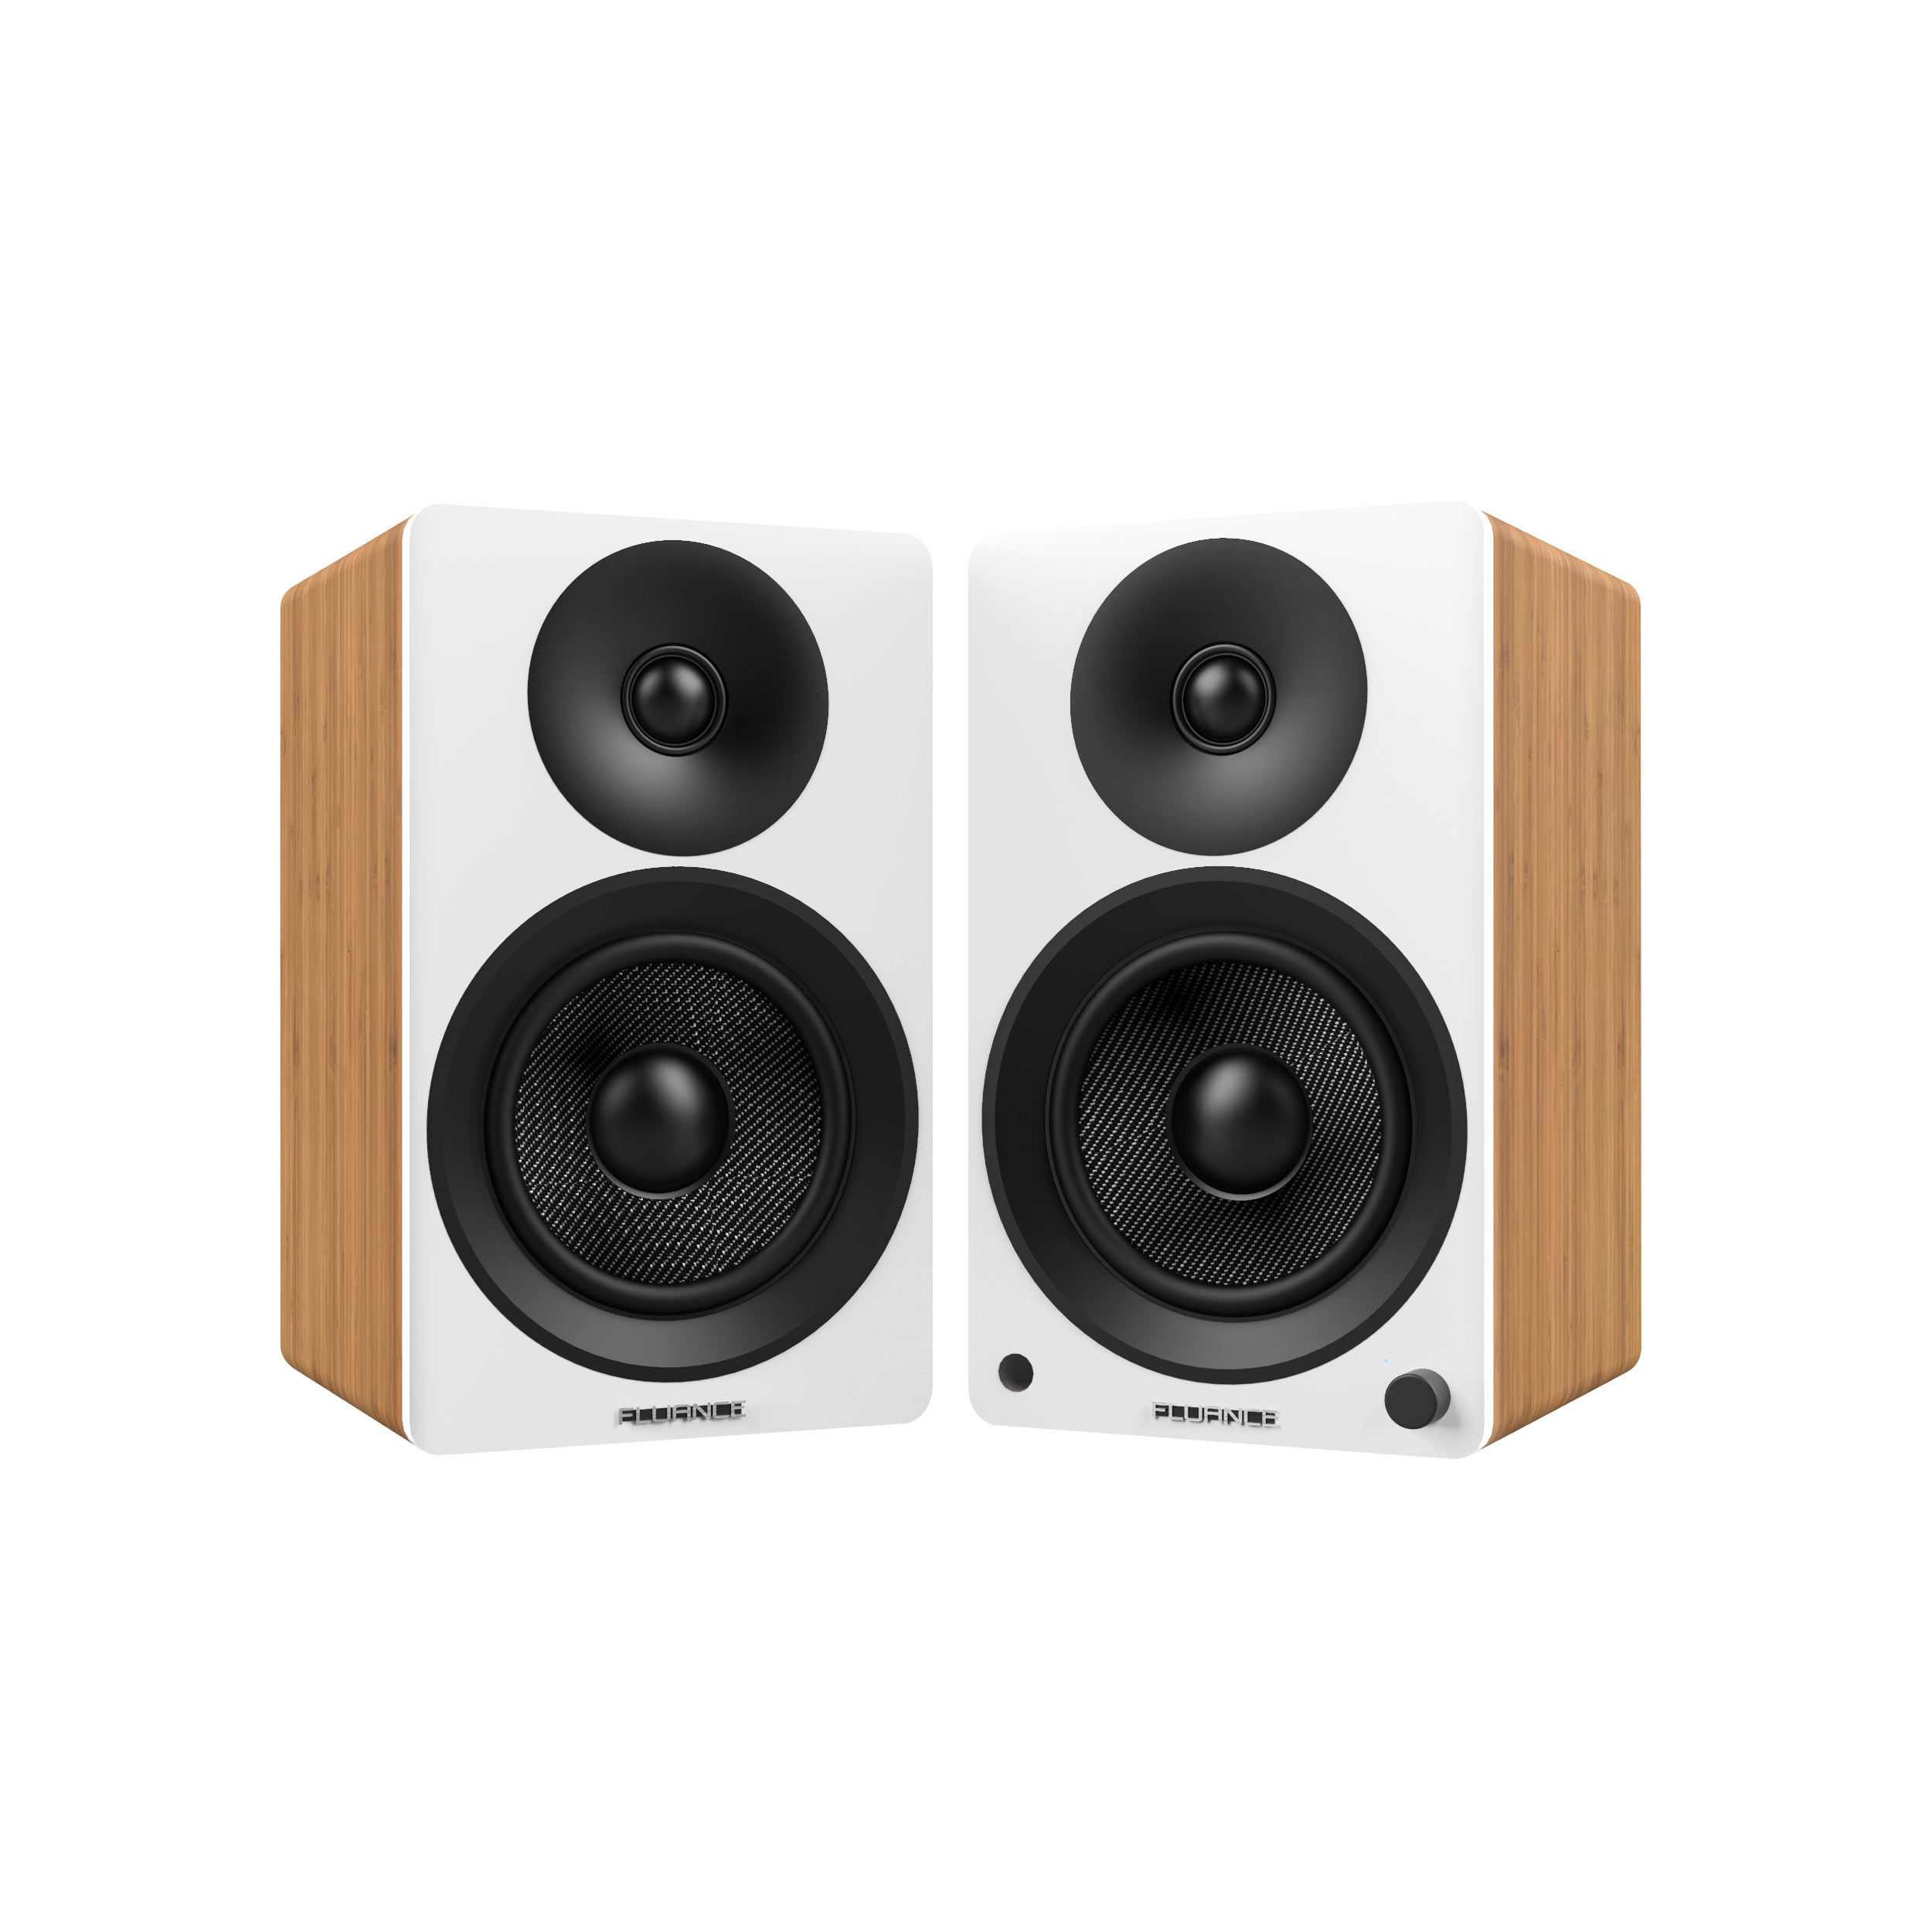 Fluance Ai40W Powered Two Way 5 20 Bookshelf Speakers With 70W Class D Amplifier For Turntable PC HDTV Bluetooth AptX Wireless Music Streaming Lucky